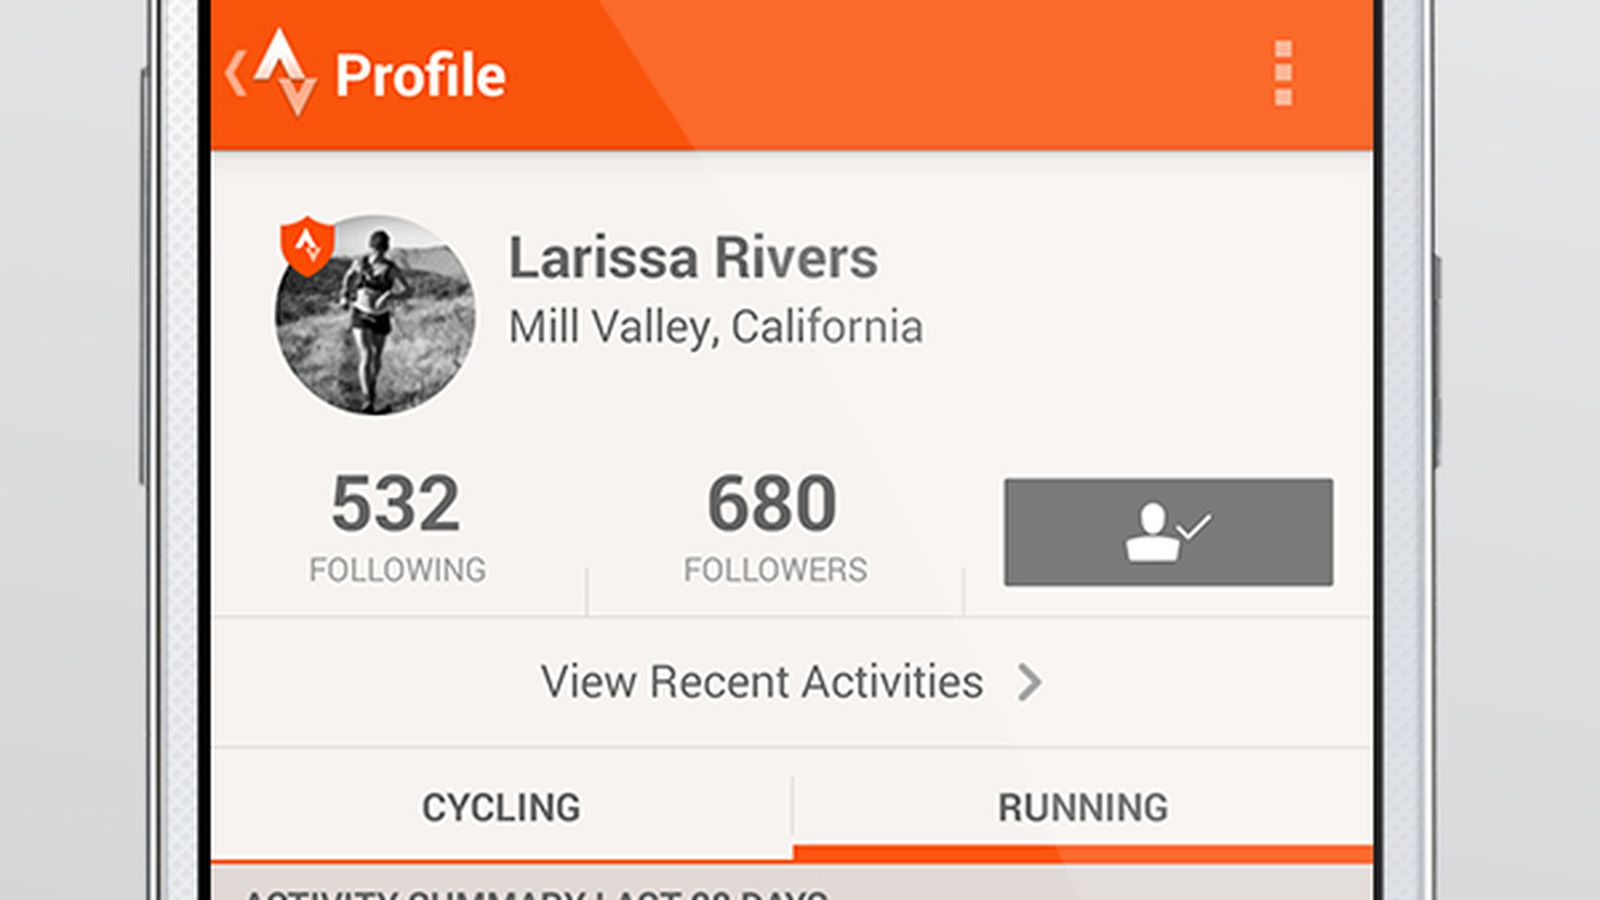 Strava 4.0, when one is better than two